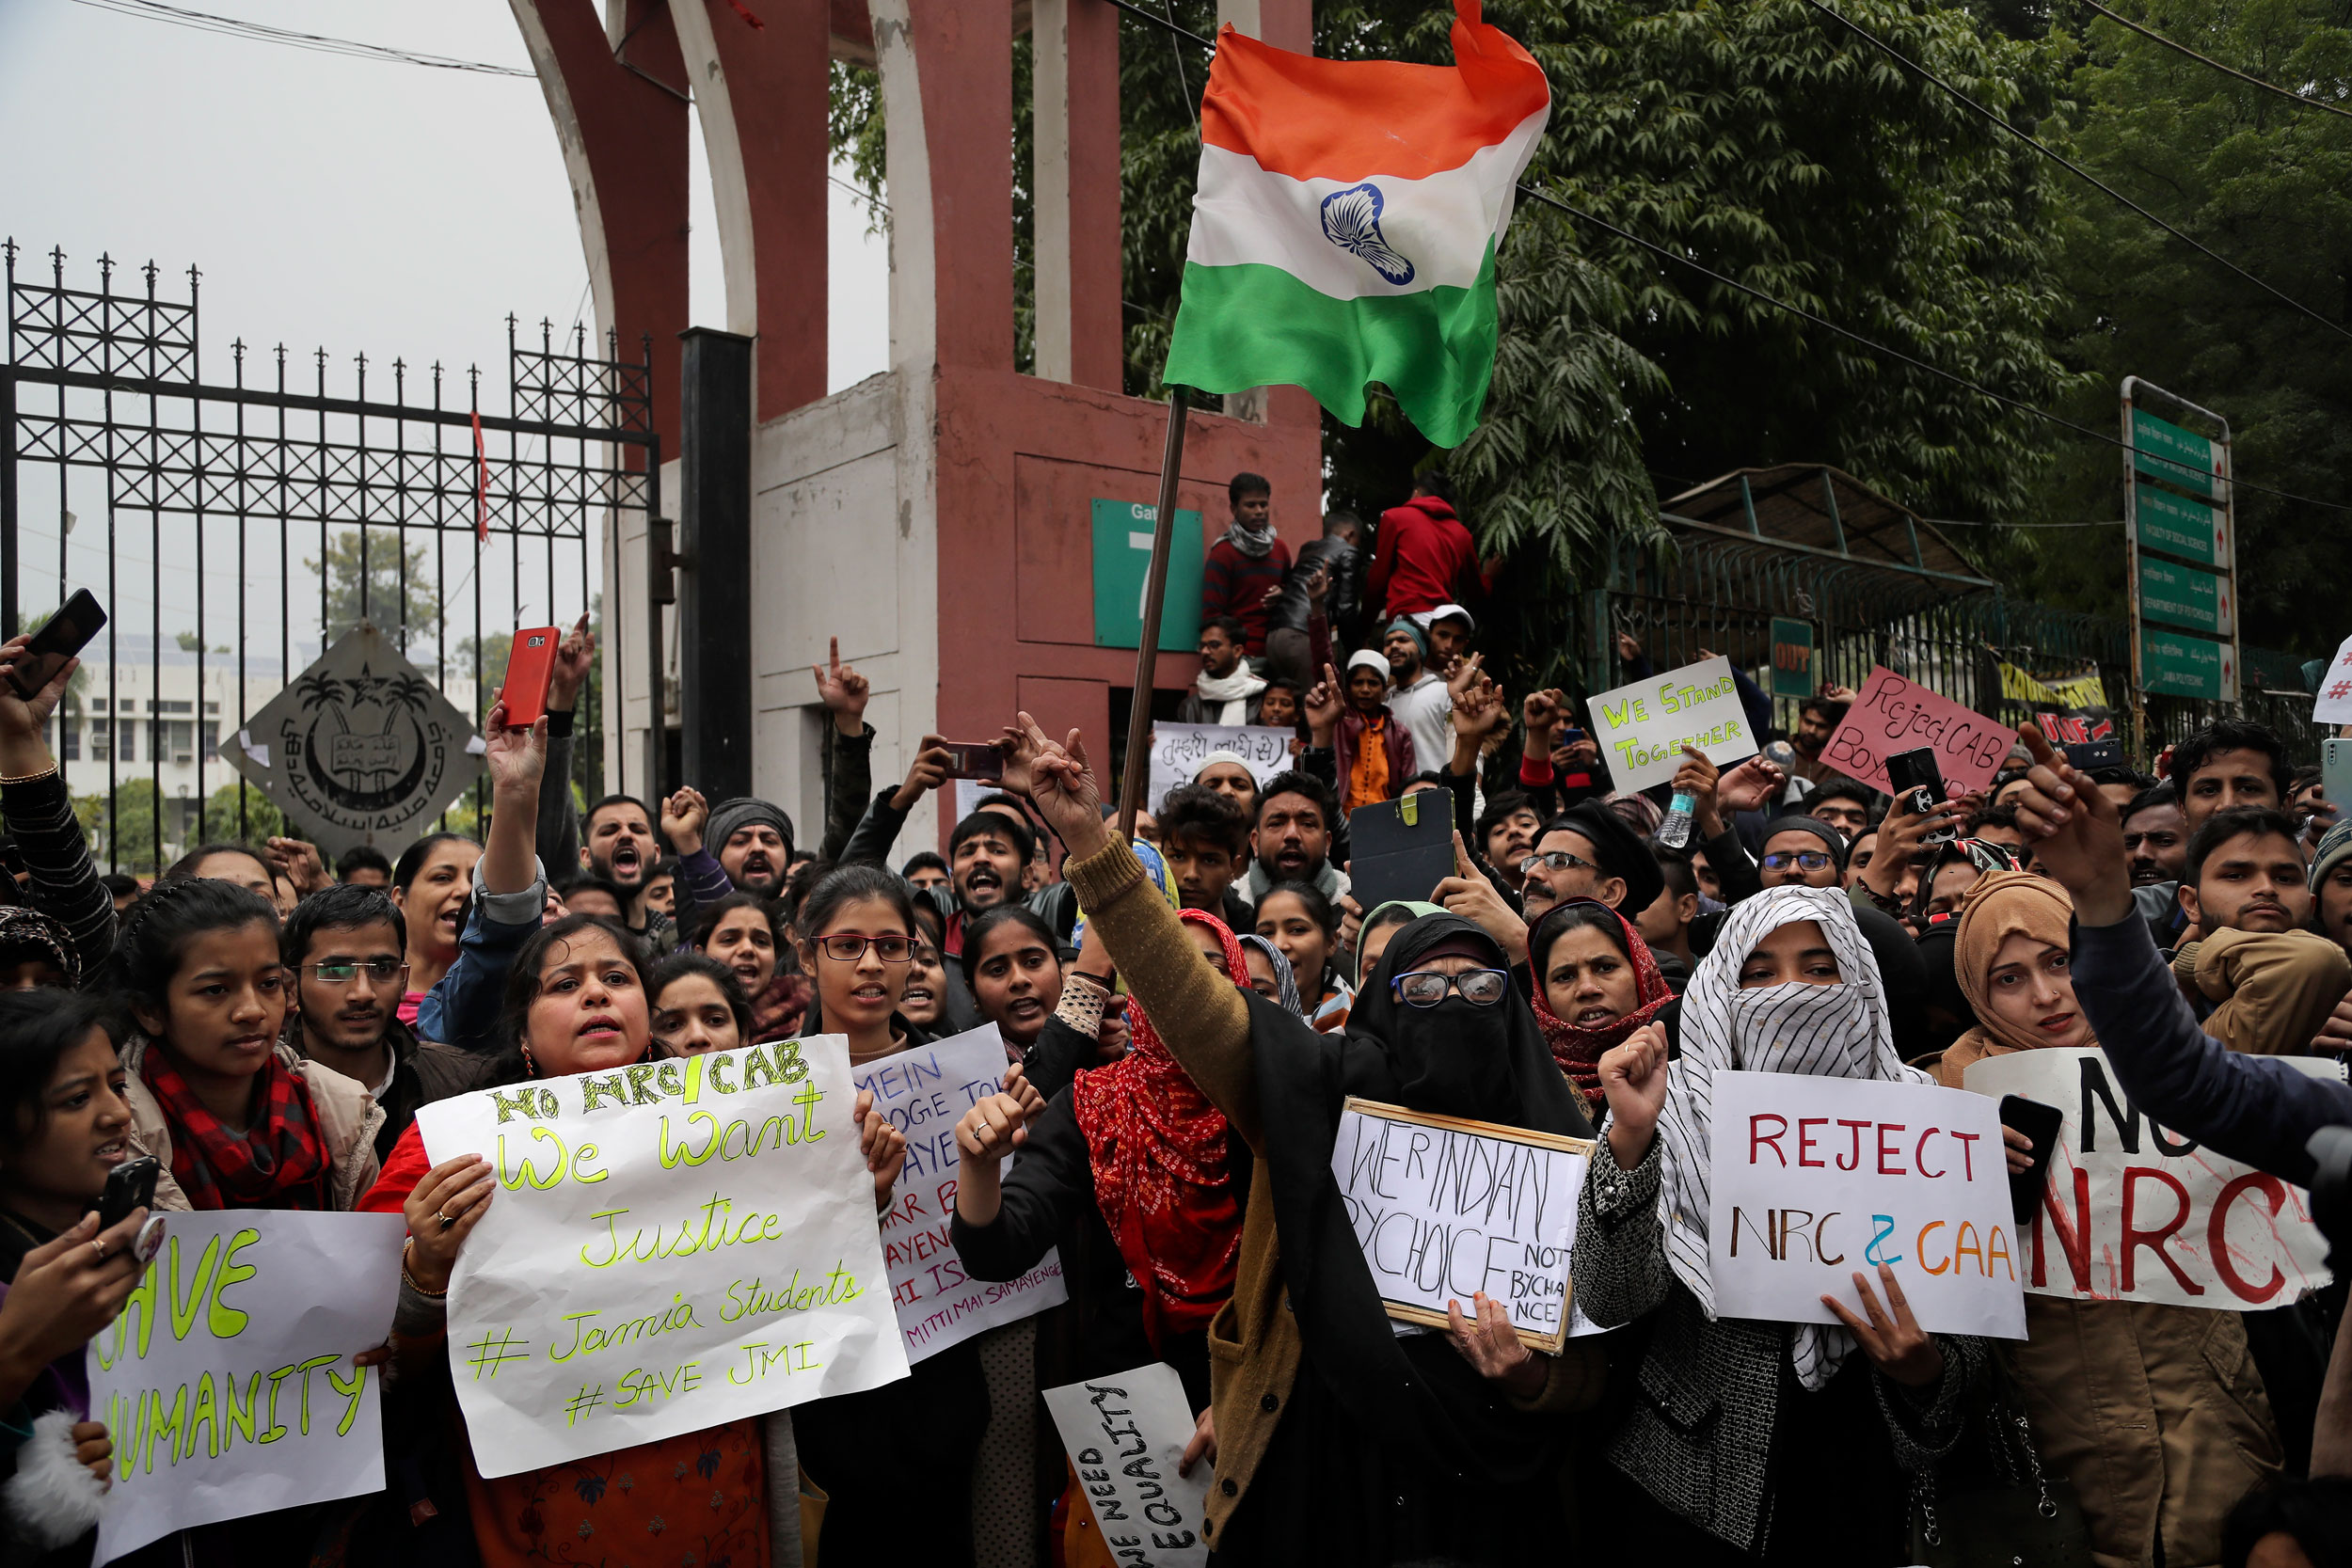 Jamia Millia Islamia students shout slogans during a protest in New Delhi on Tuesday.